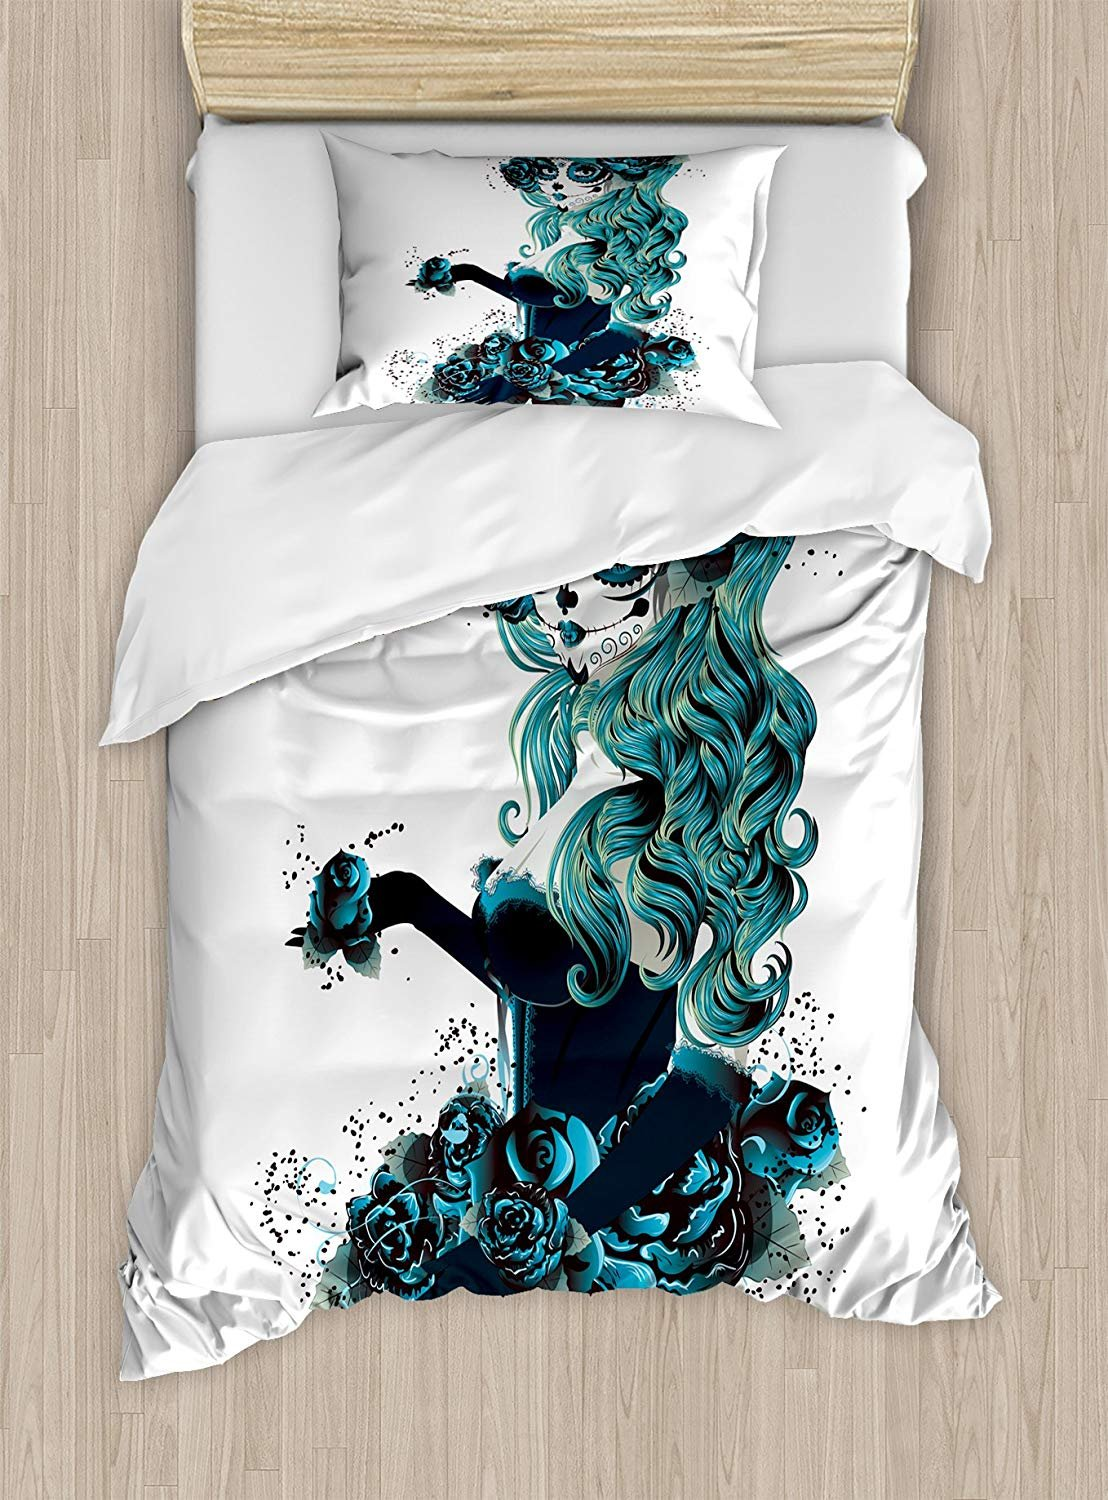 Twin XL Extra Long Bedding Set,Skull Duvet Cover Set,Vintage Sugar Skull Girl Bride with Dark Color Roses Graphic,Cosy House Collection 4 Piece Bedding Setss,Petrol Blue White